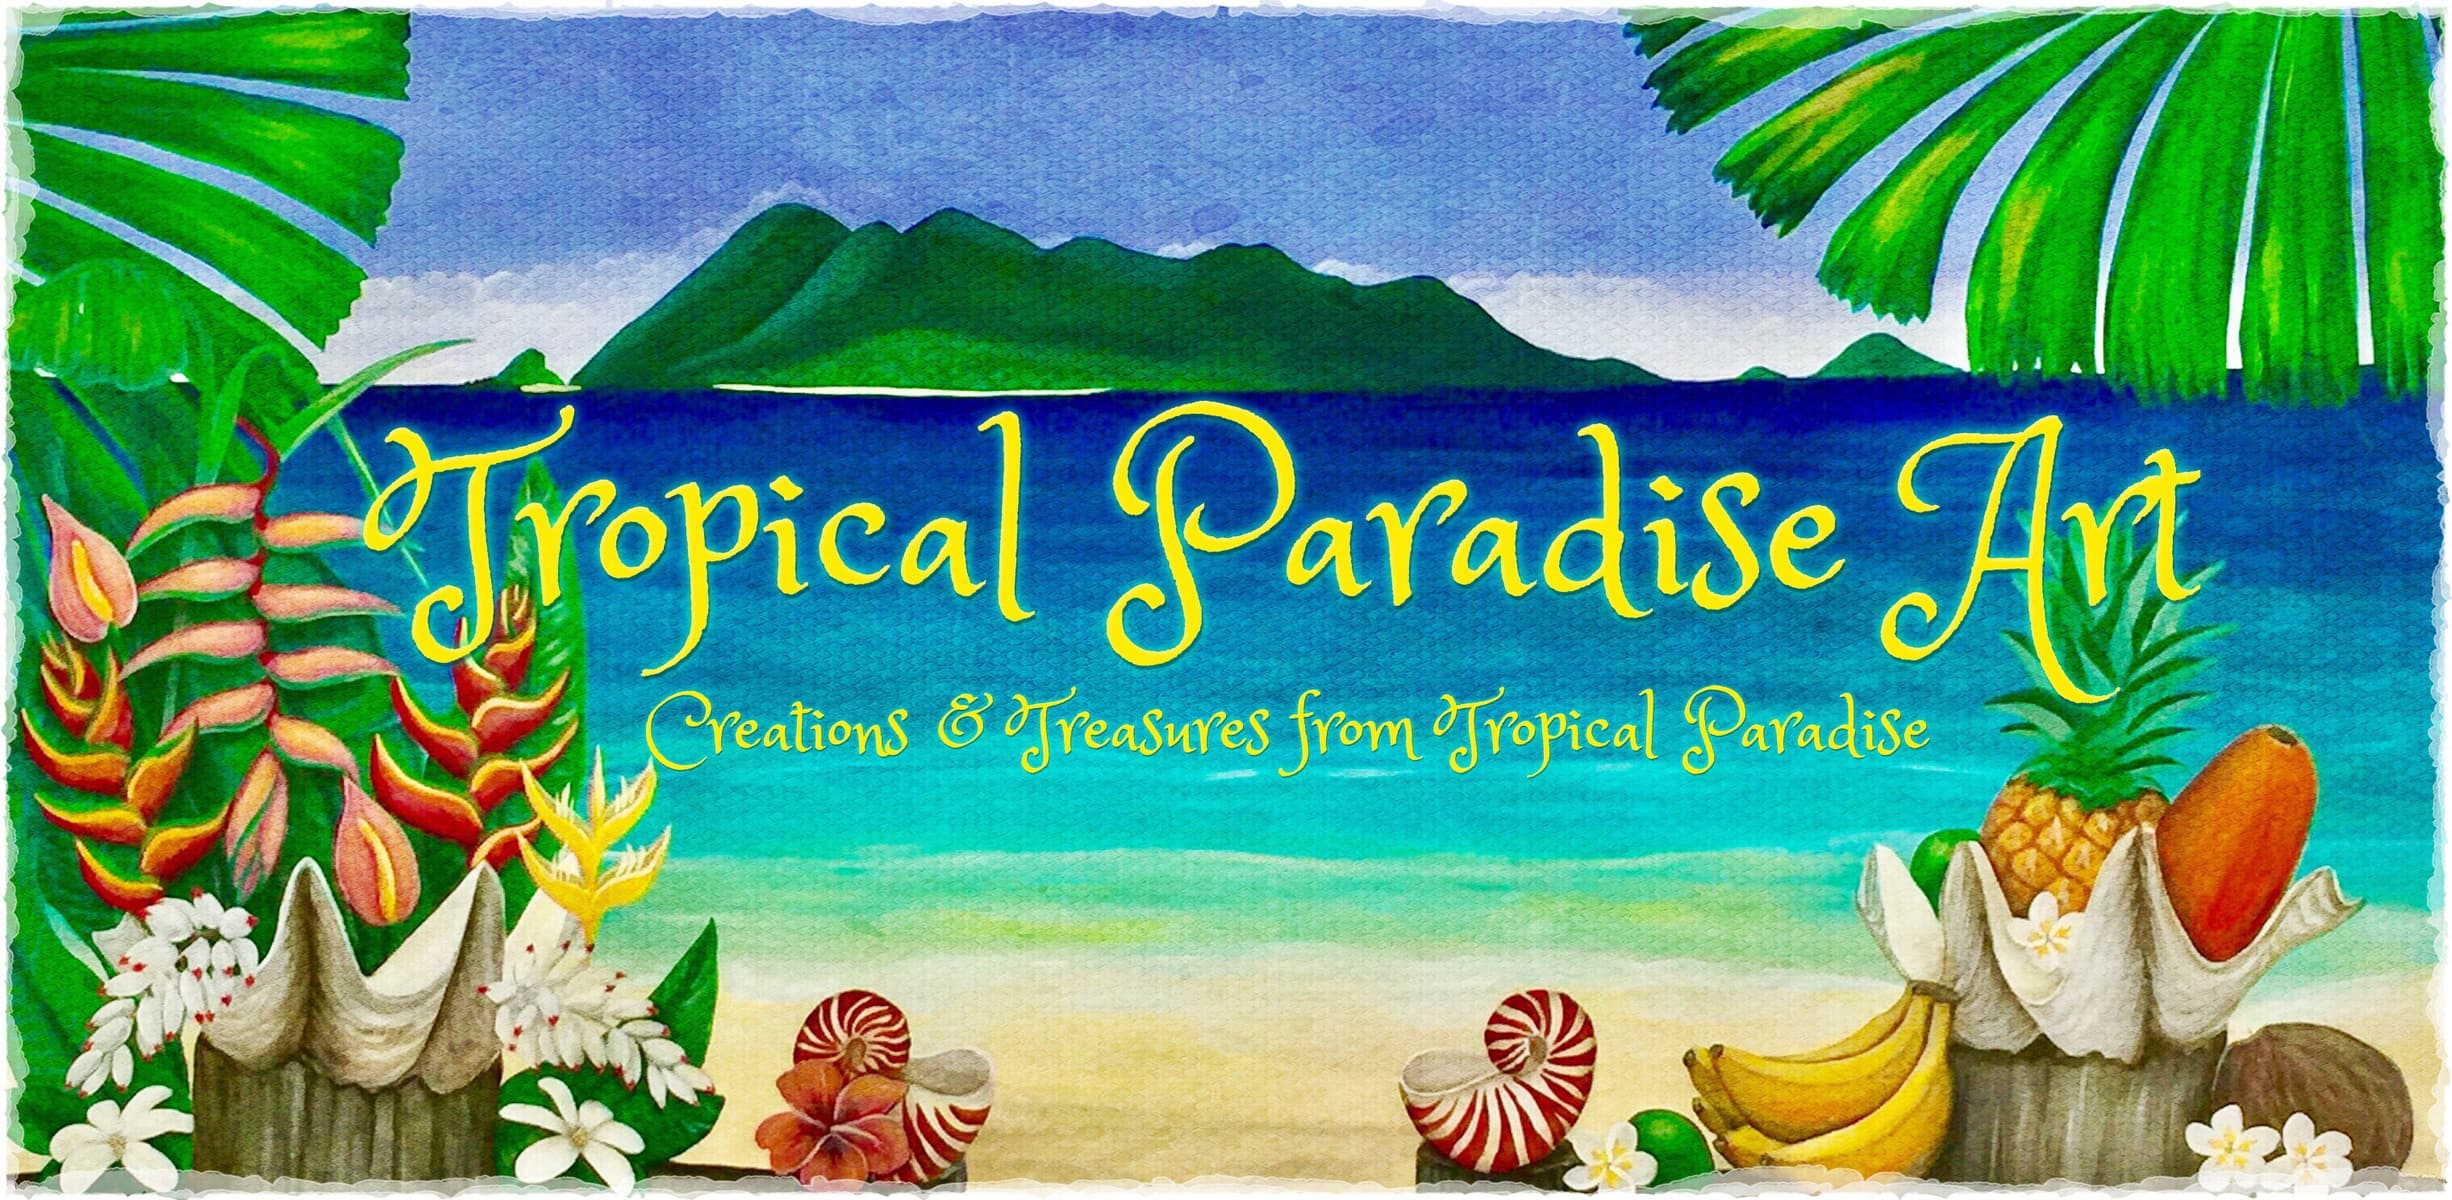 Tropical Paradise Art